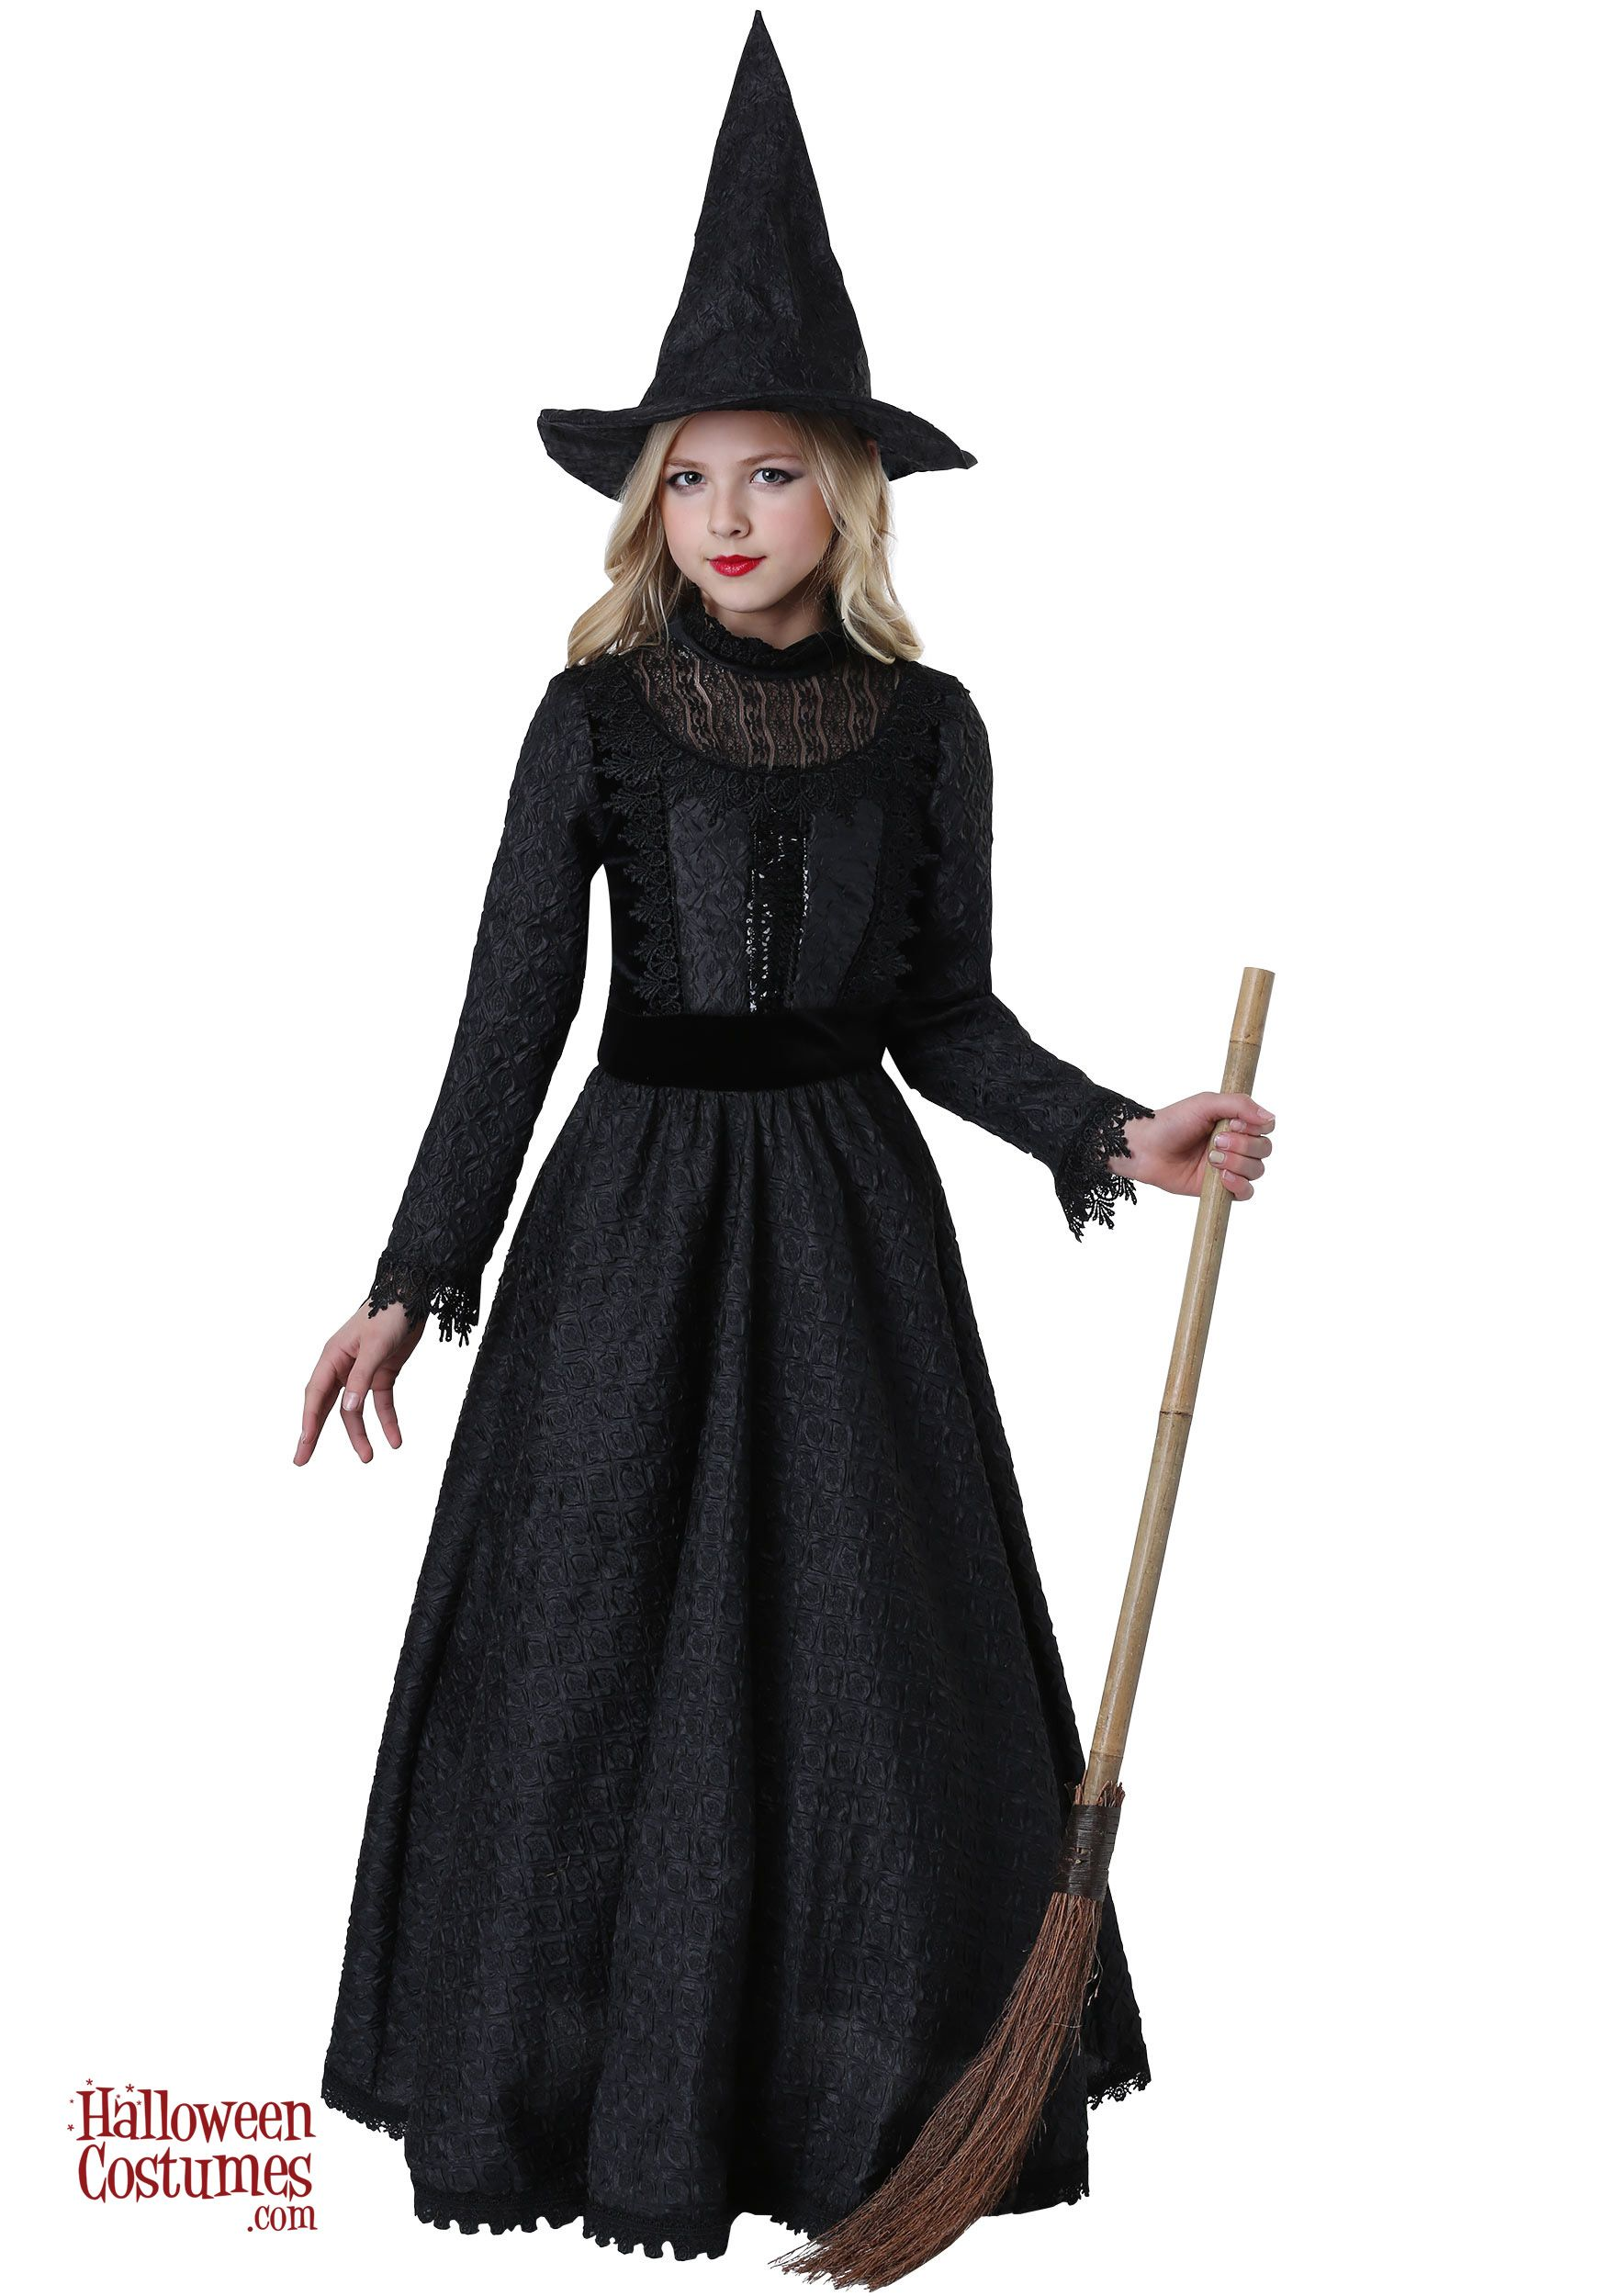 Deluxe Girls Witch Costume Kids witch costume, Girl